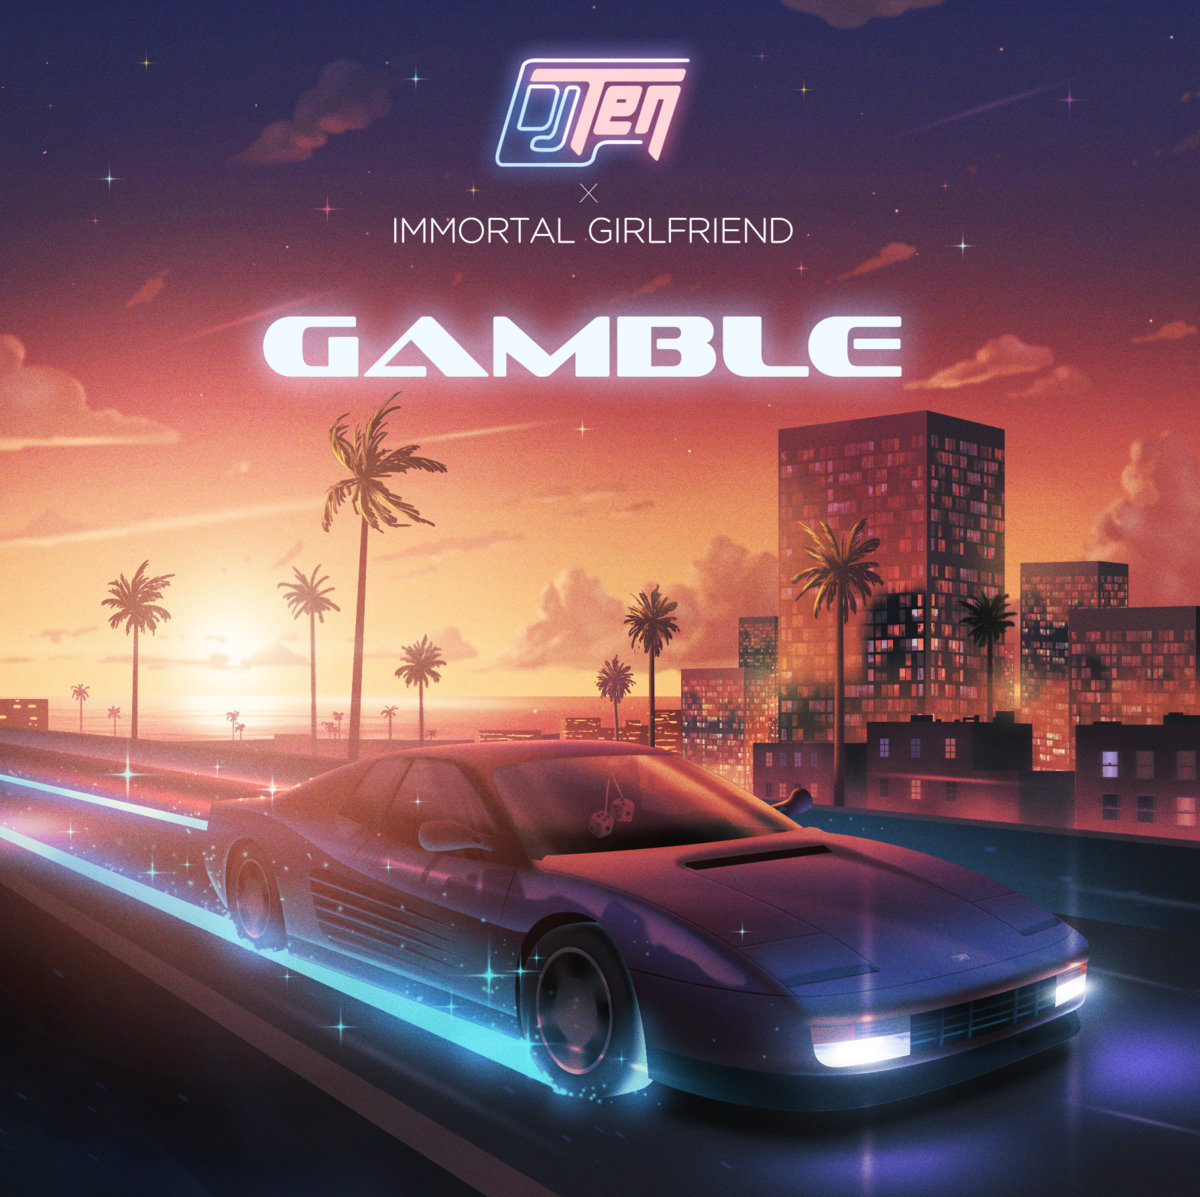 a2453963995 10 - DJ Ten & Immortal Girlfriend - Gamble